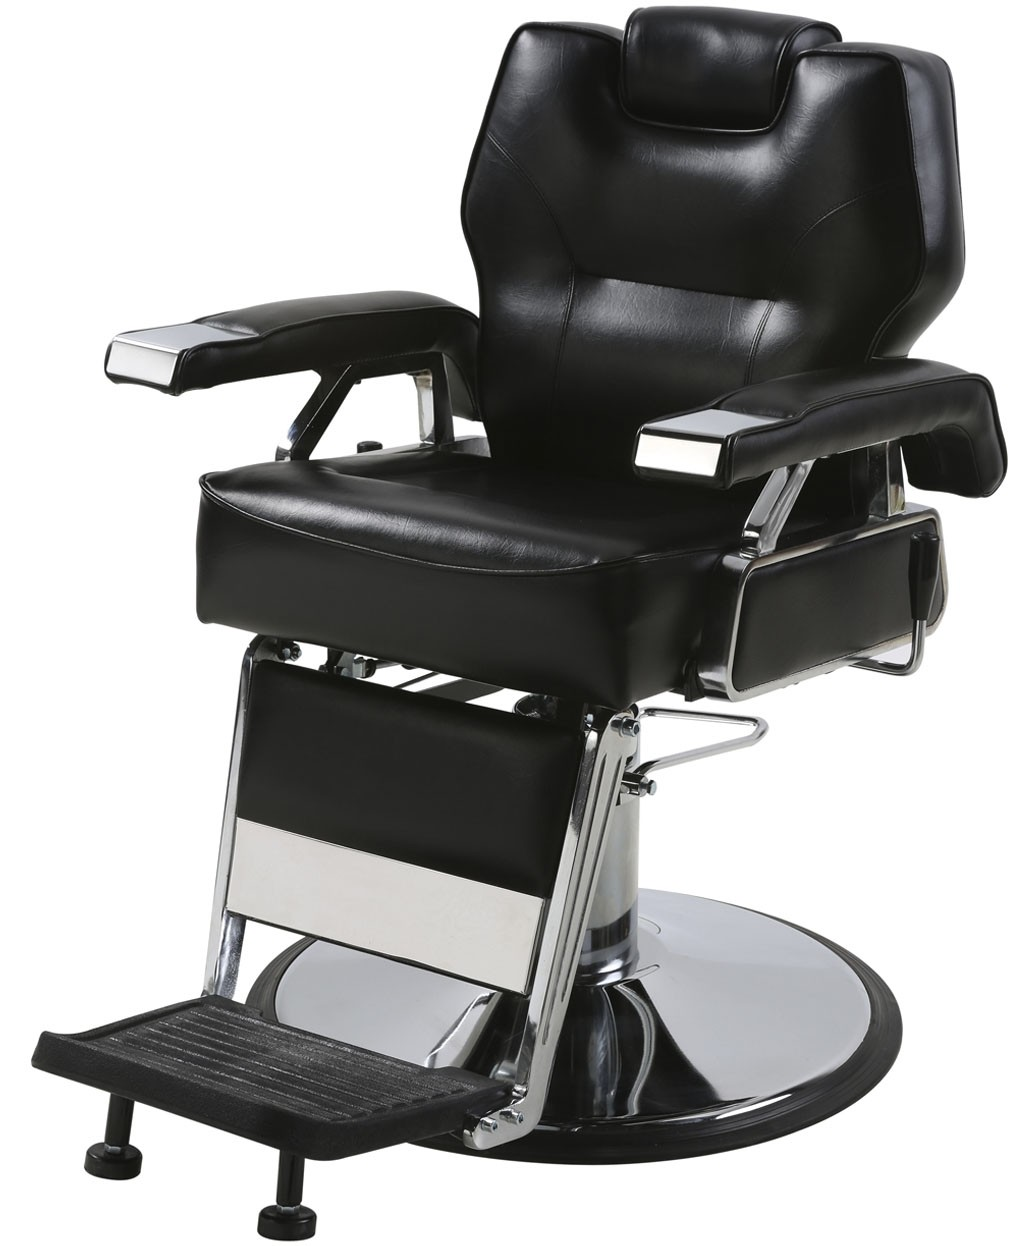 KO Professional Barber Chair